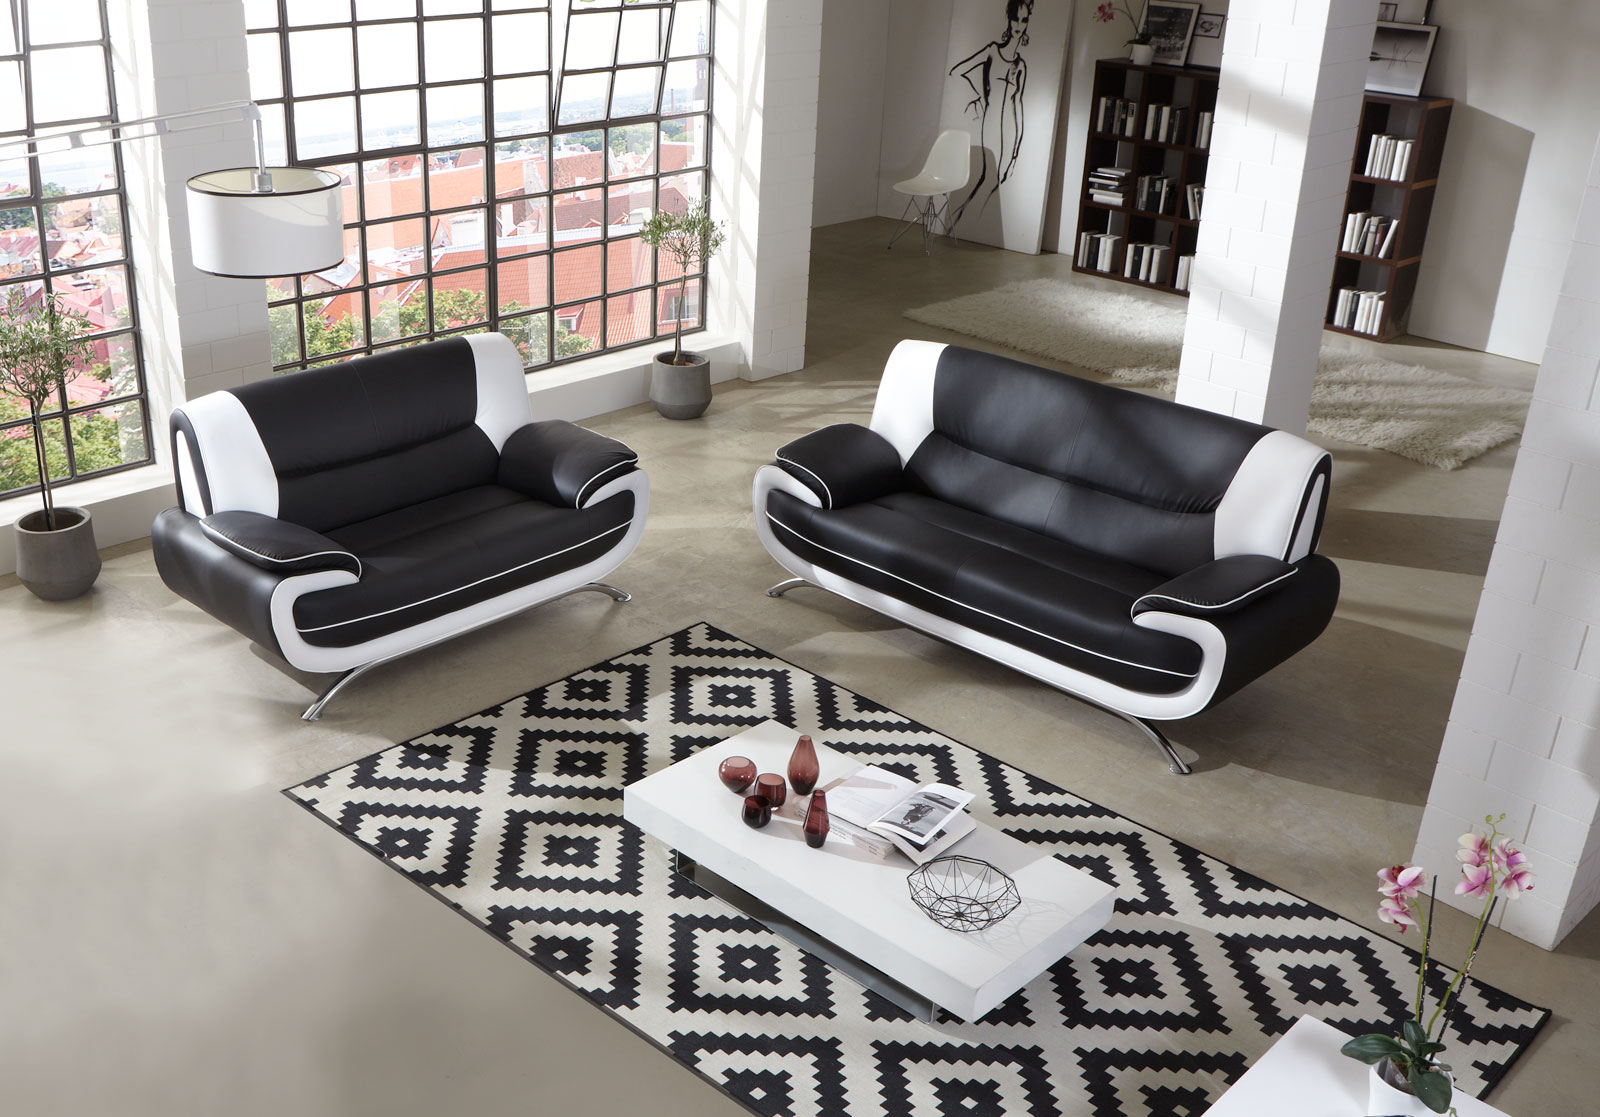 sam sofa garnitur 2tlg in schwarz wei passero 3 2. Black Bedroom Furniture Sets. Home Design Ideas